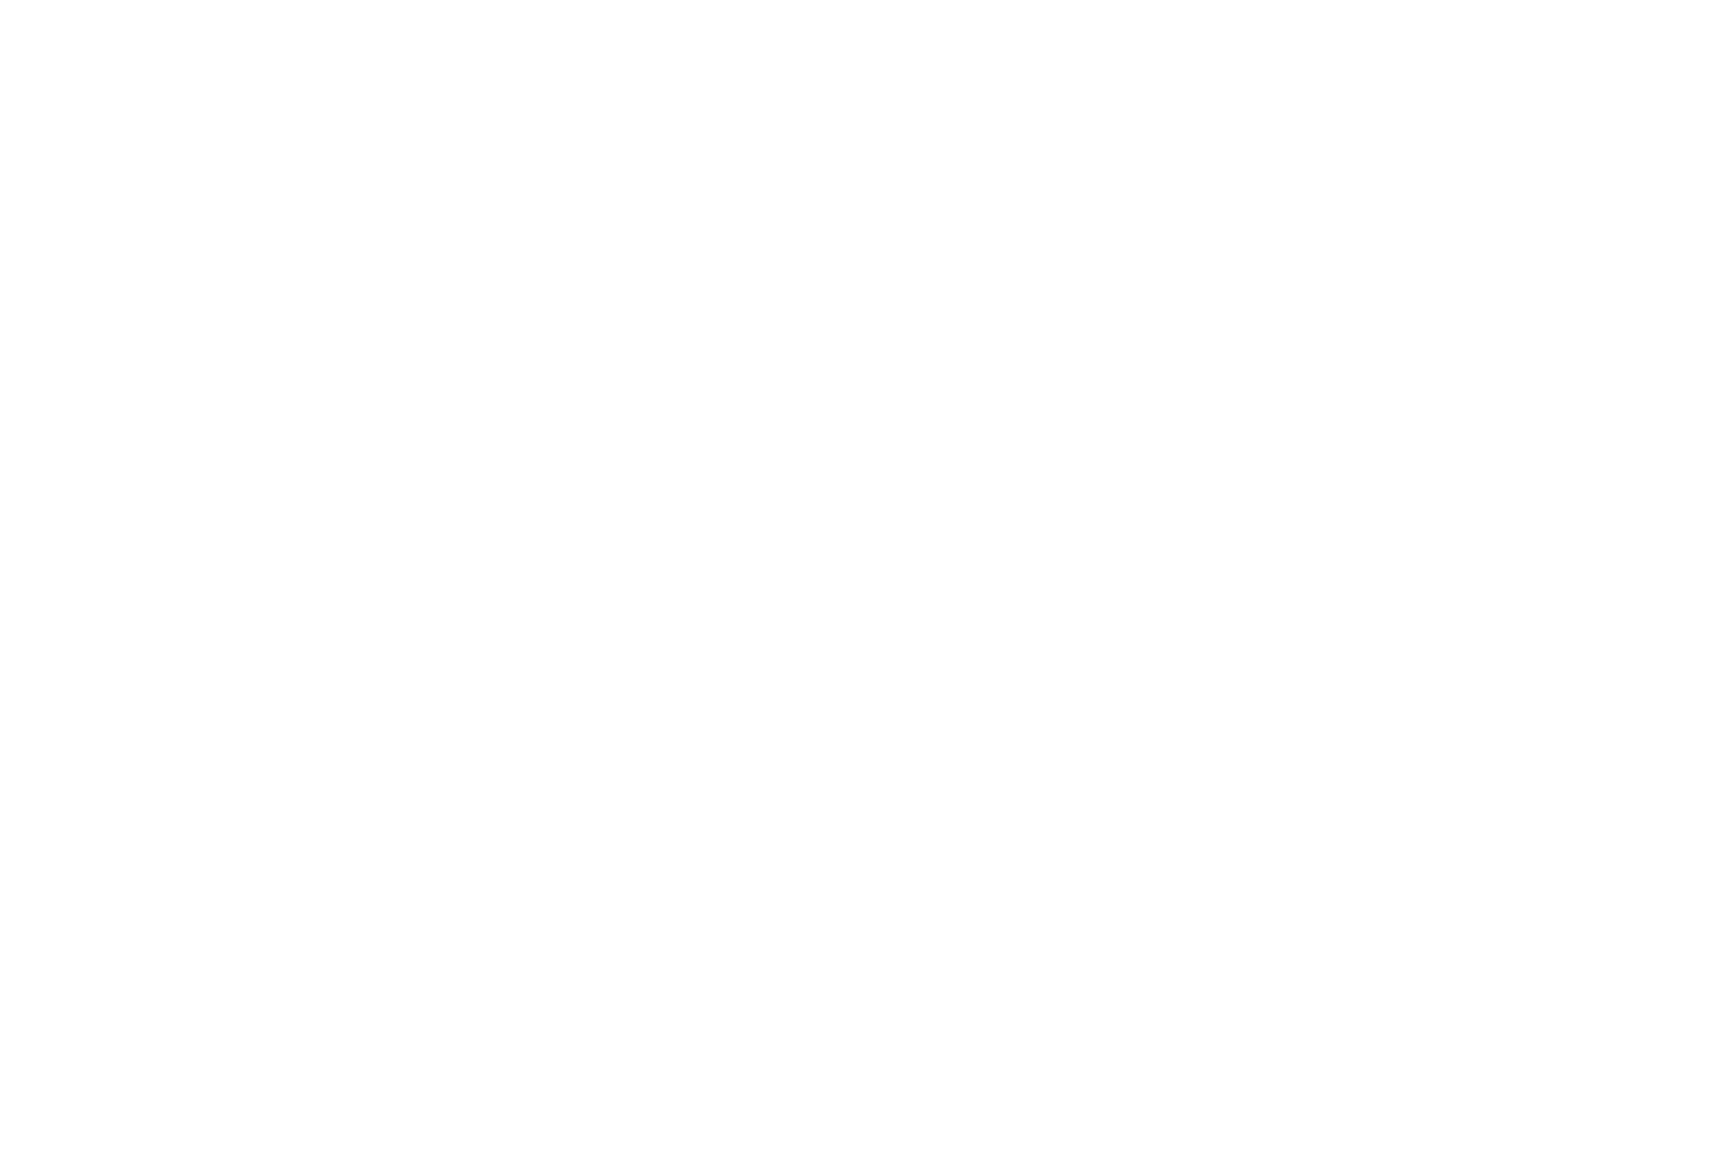 Commffest Global Community Film  Arts Festival 2018.png